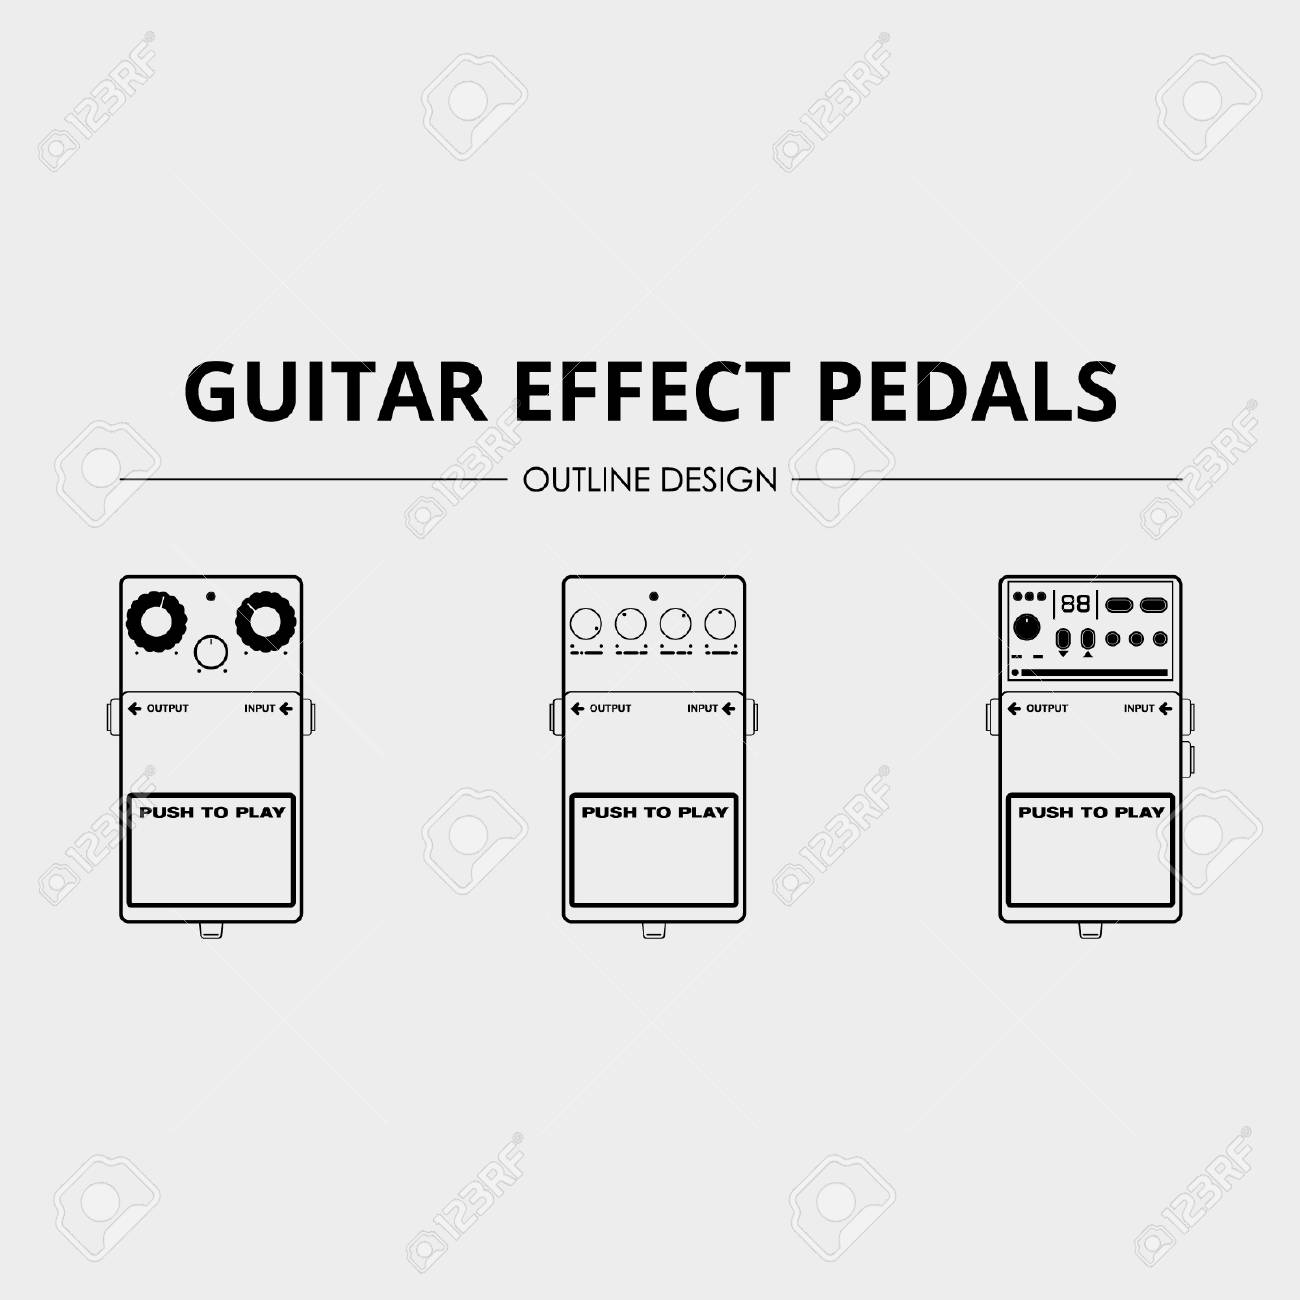 Guitar Effects Pedals - Lineart Vector Pack - 110619551